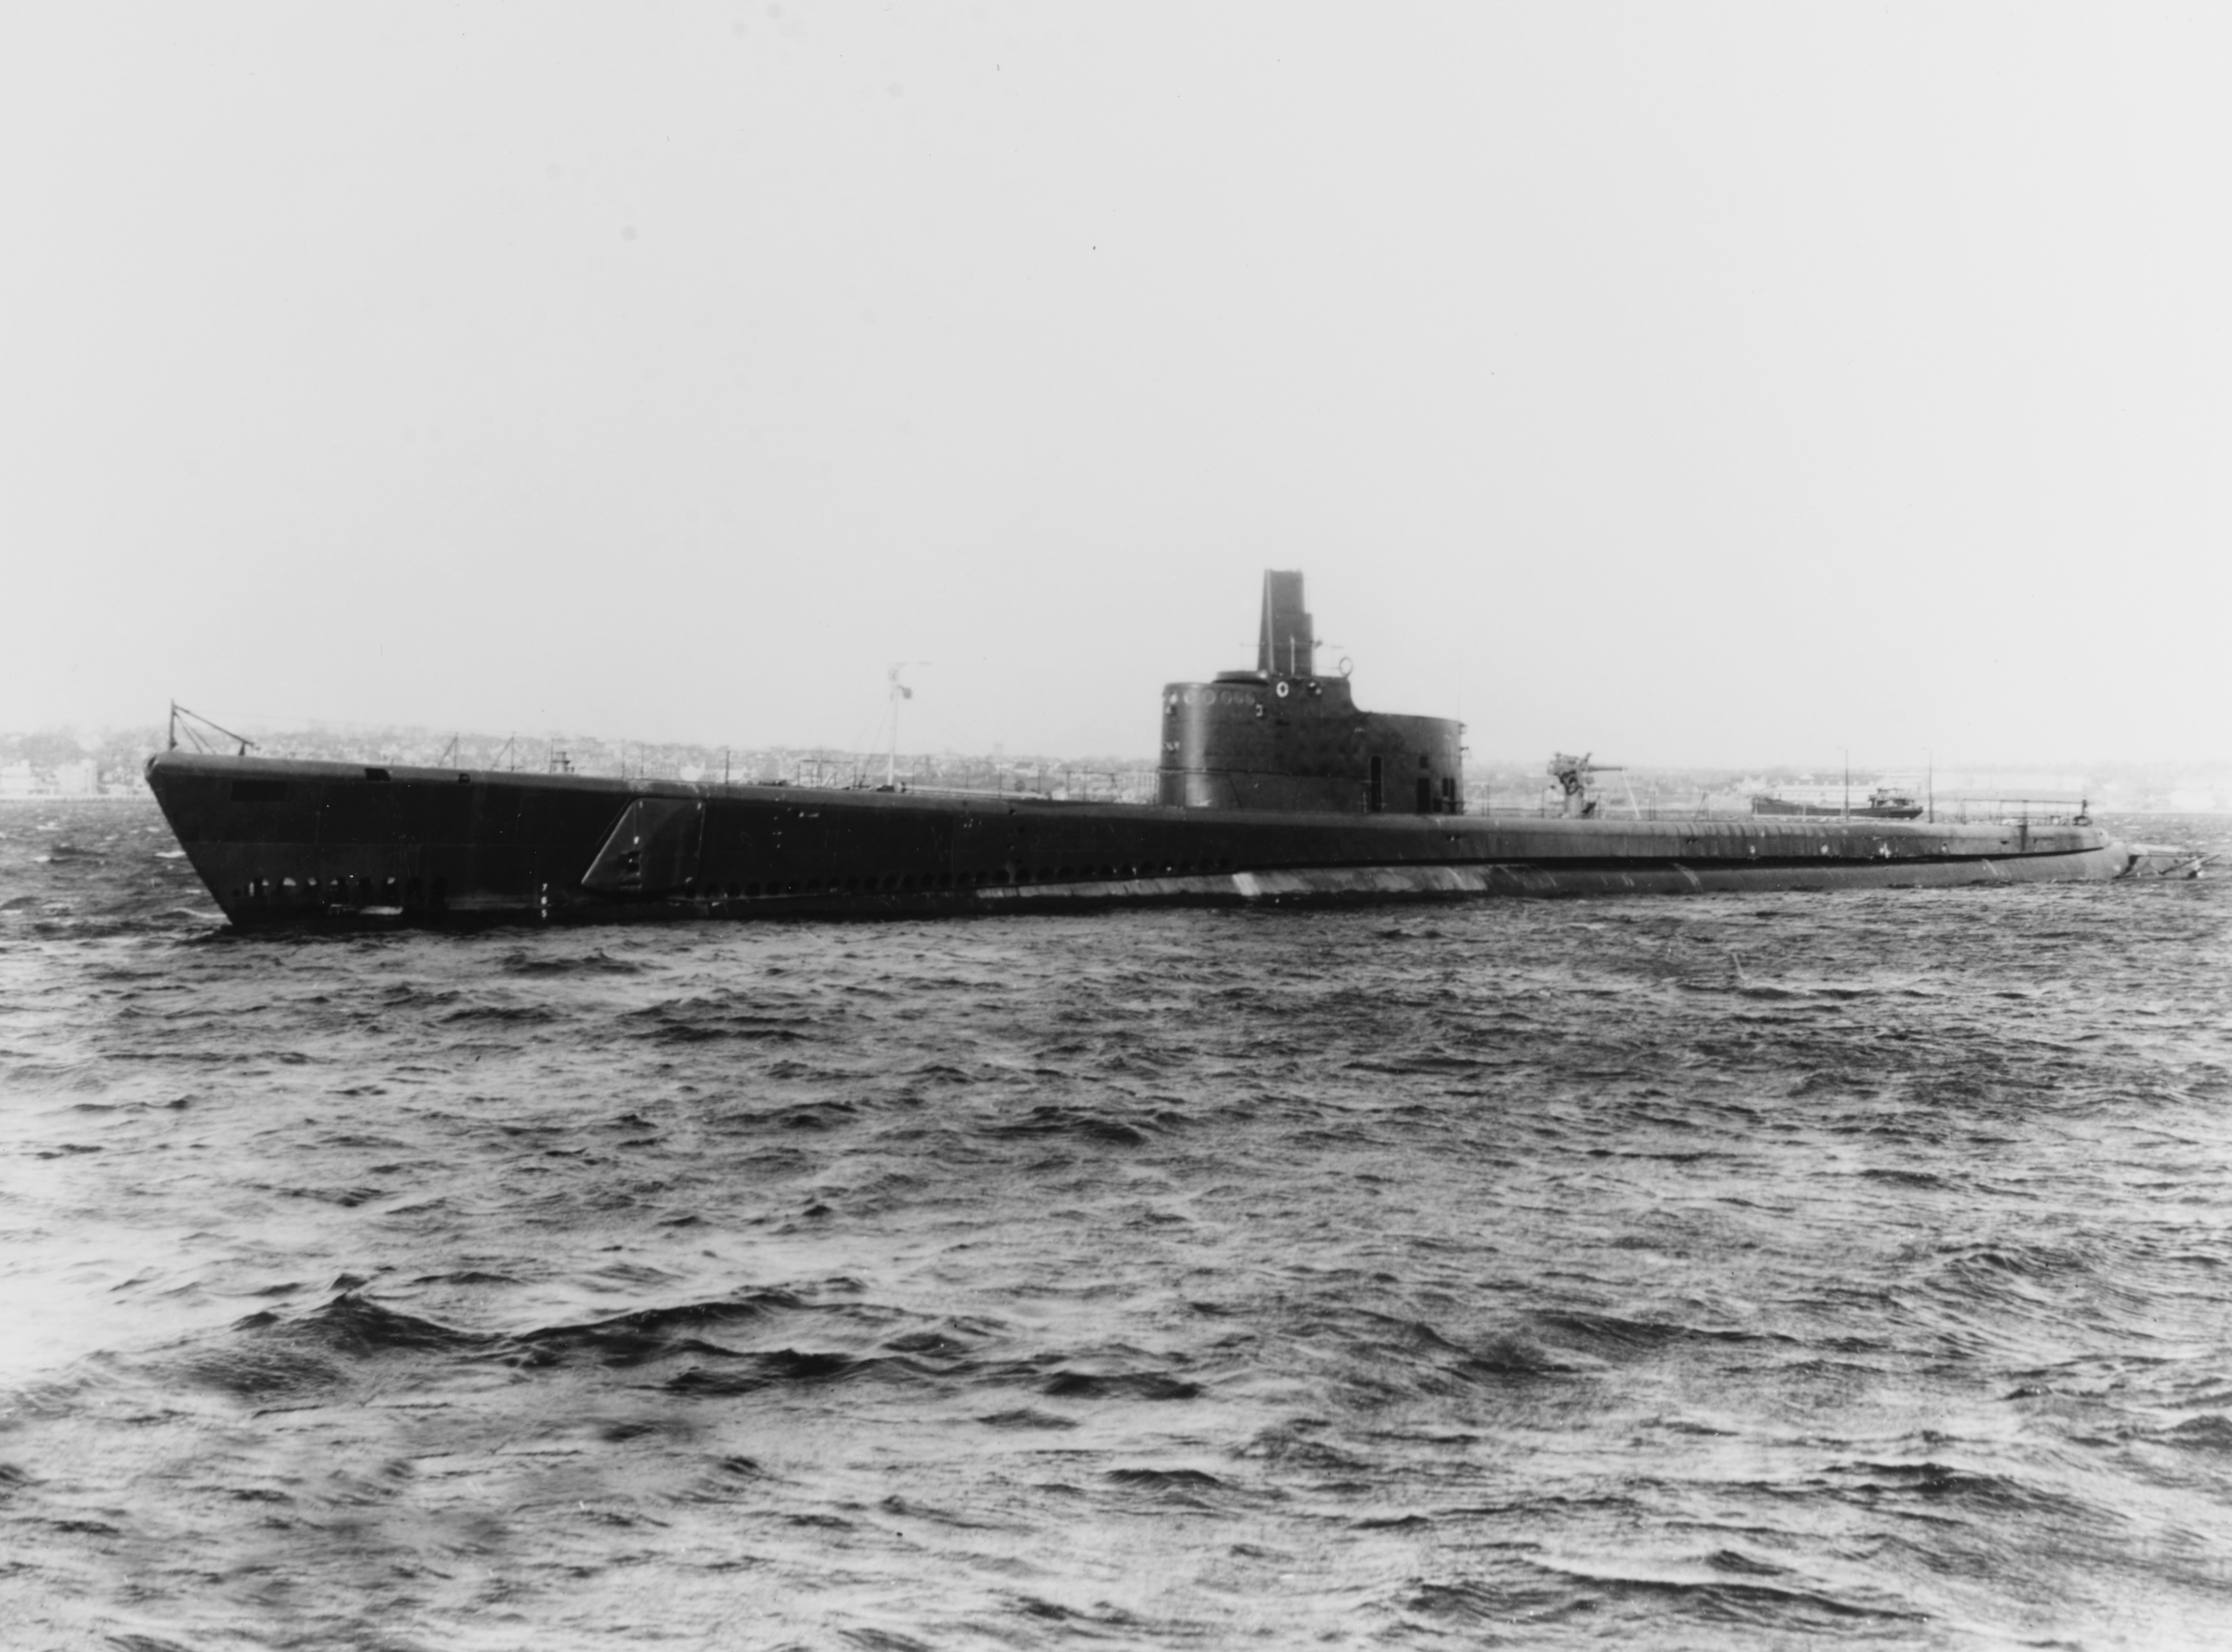 The U.S. Navy submarine USS Growler (SS-215) underway on May 5, 1943. Note the 76 mm gun mounted forward.